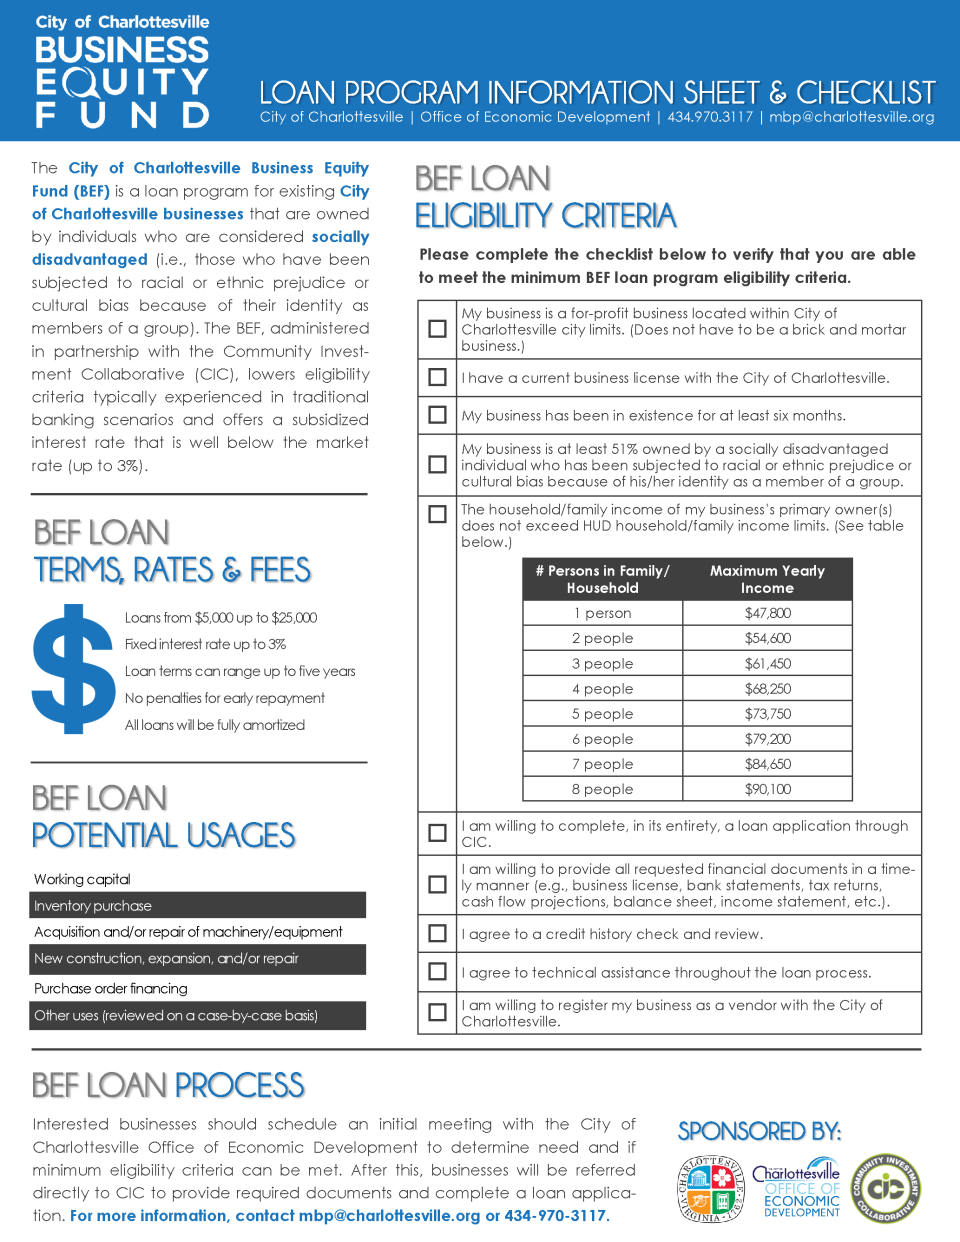 City of Charlottesville Business Equity Fund Loan Program Sheet and Checklist (PDF)